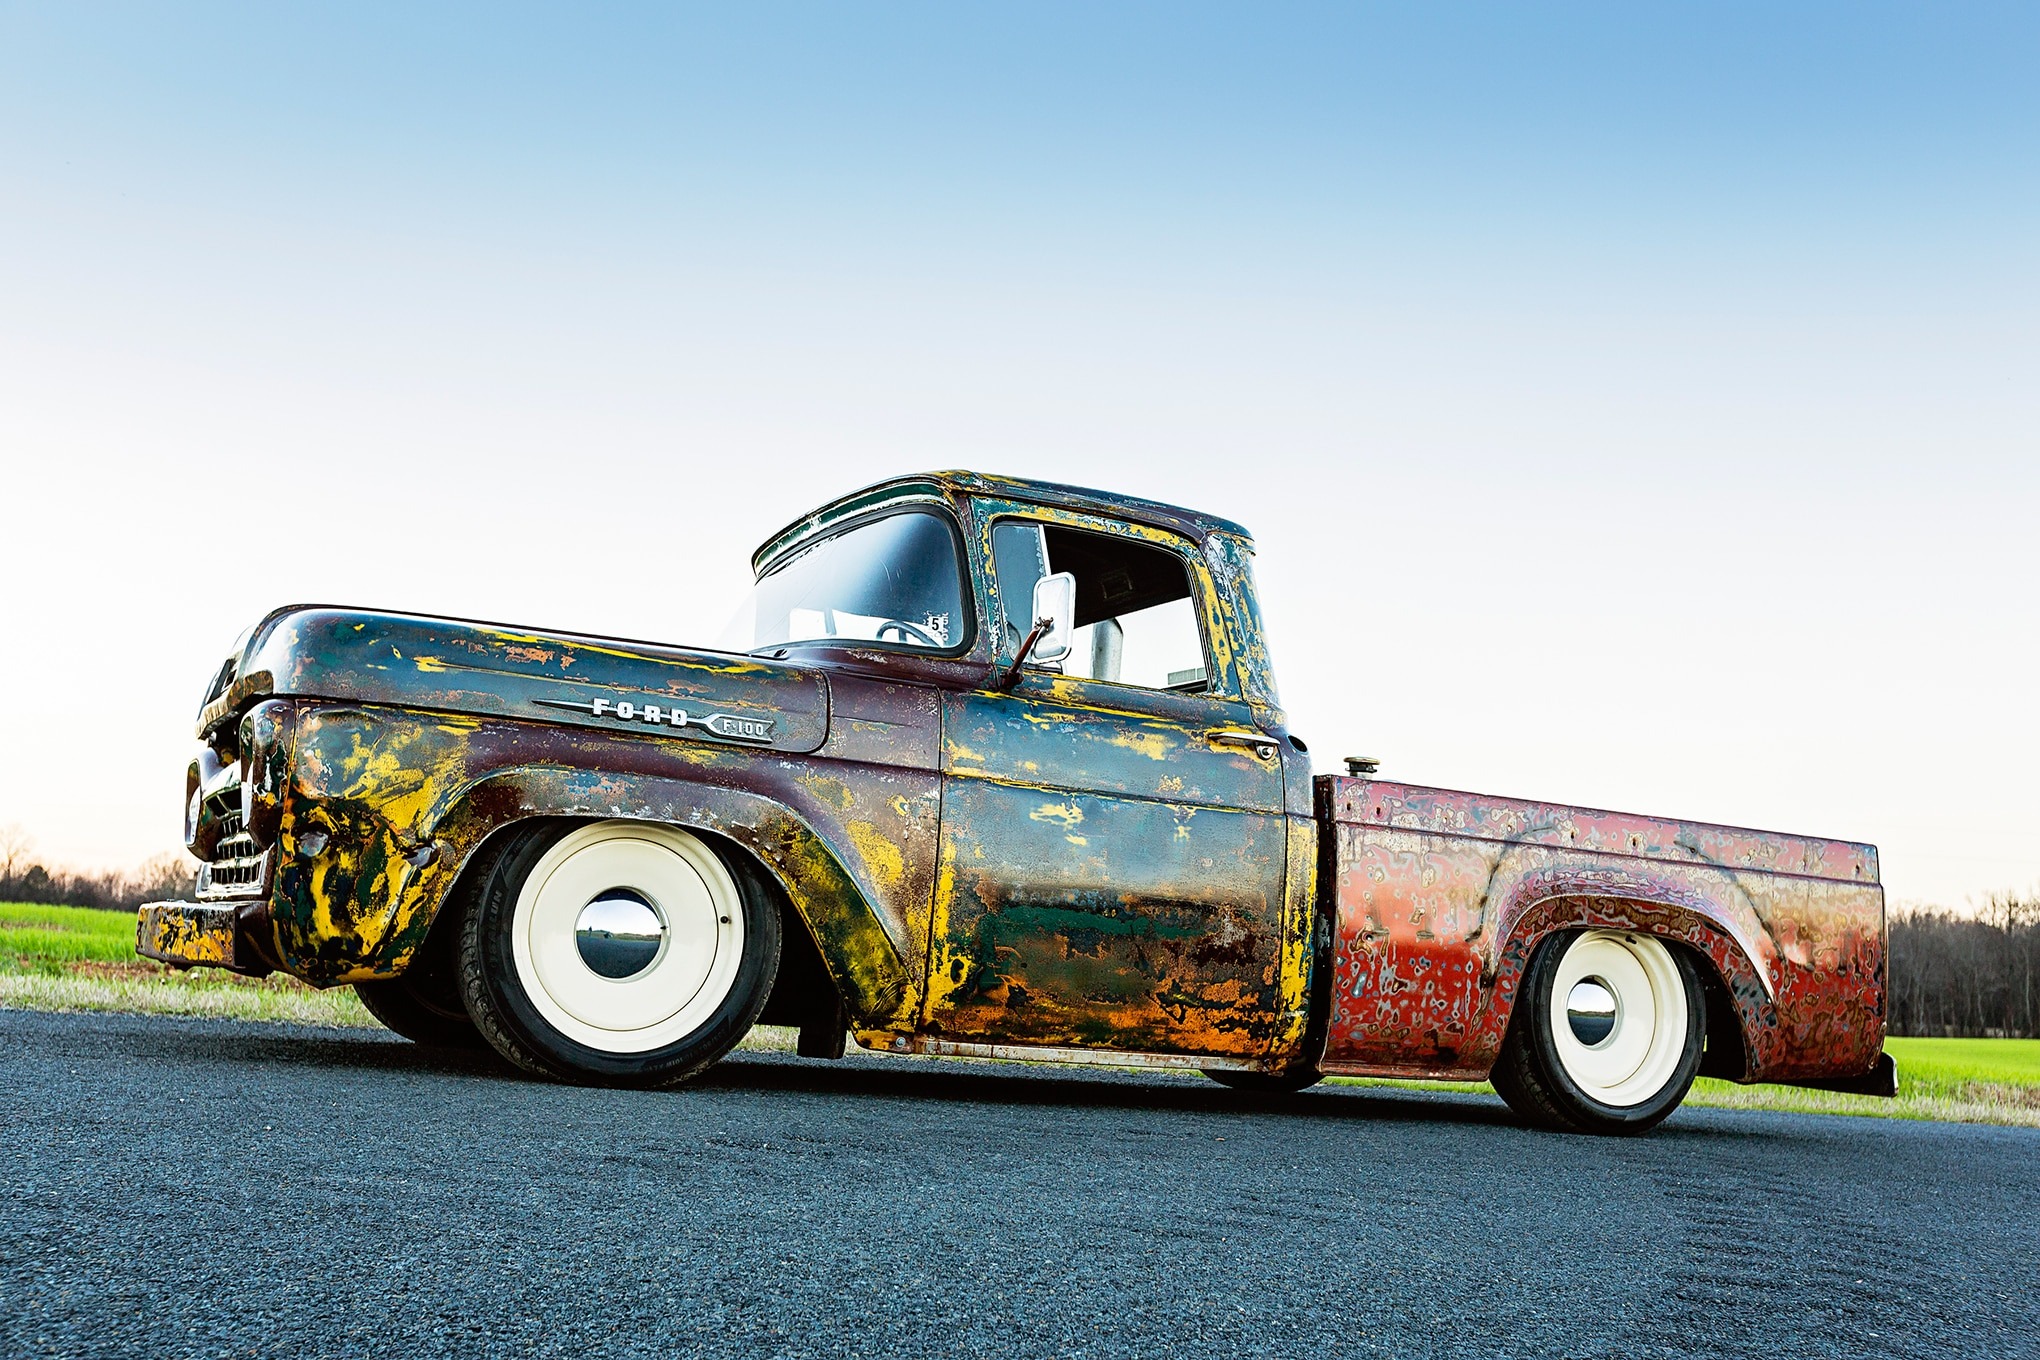 024 1960 Ford F 100 Caterpillar Diesel Engine Swap Rat Rod Pickup Patina Paint Job Side View